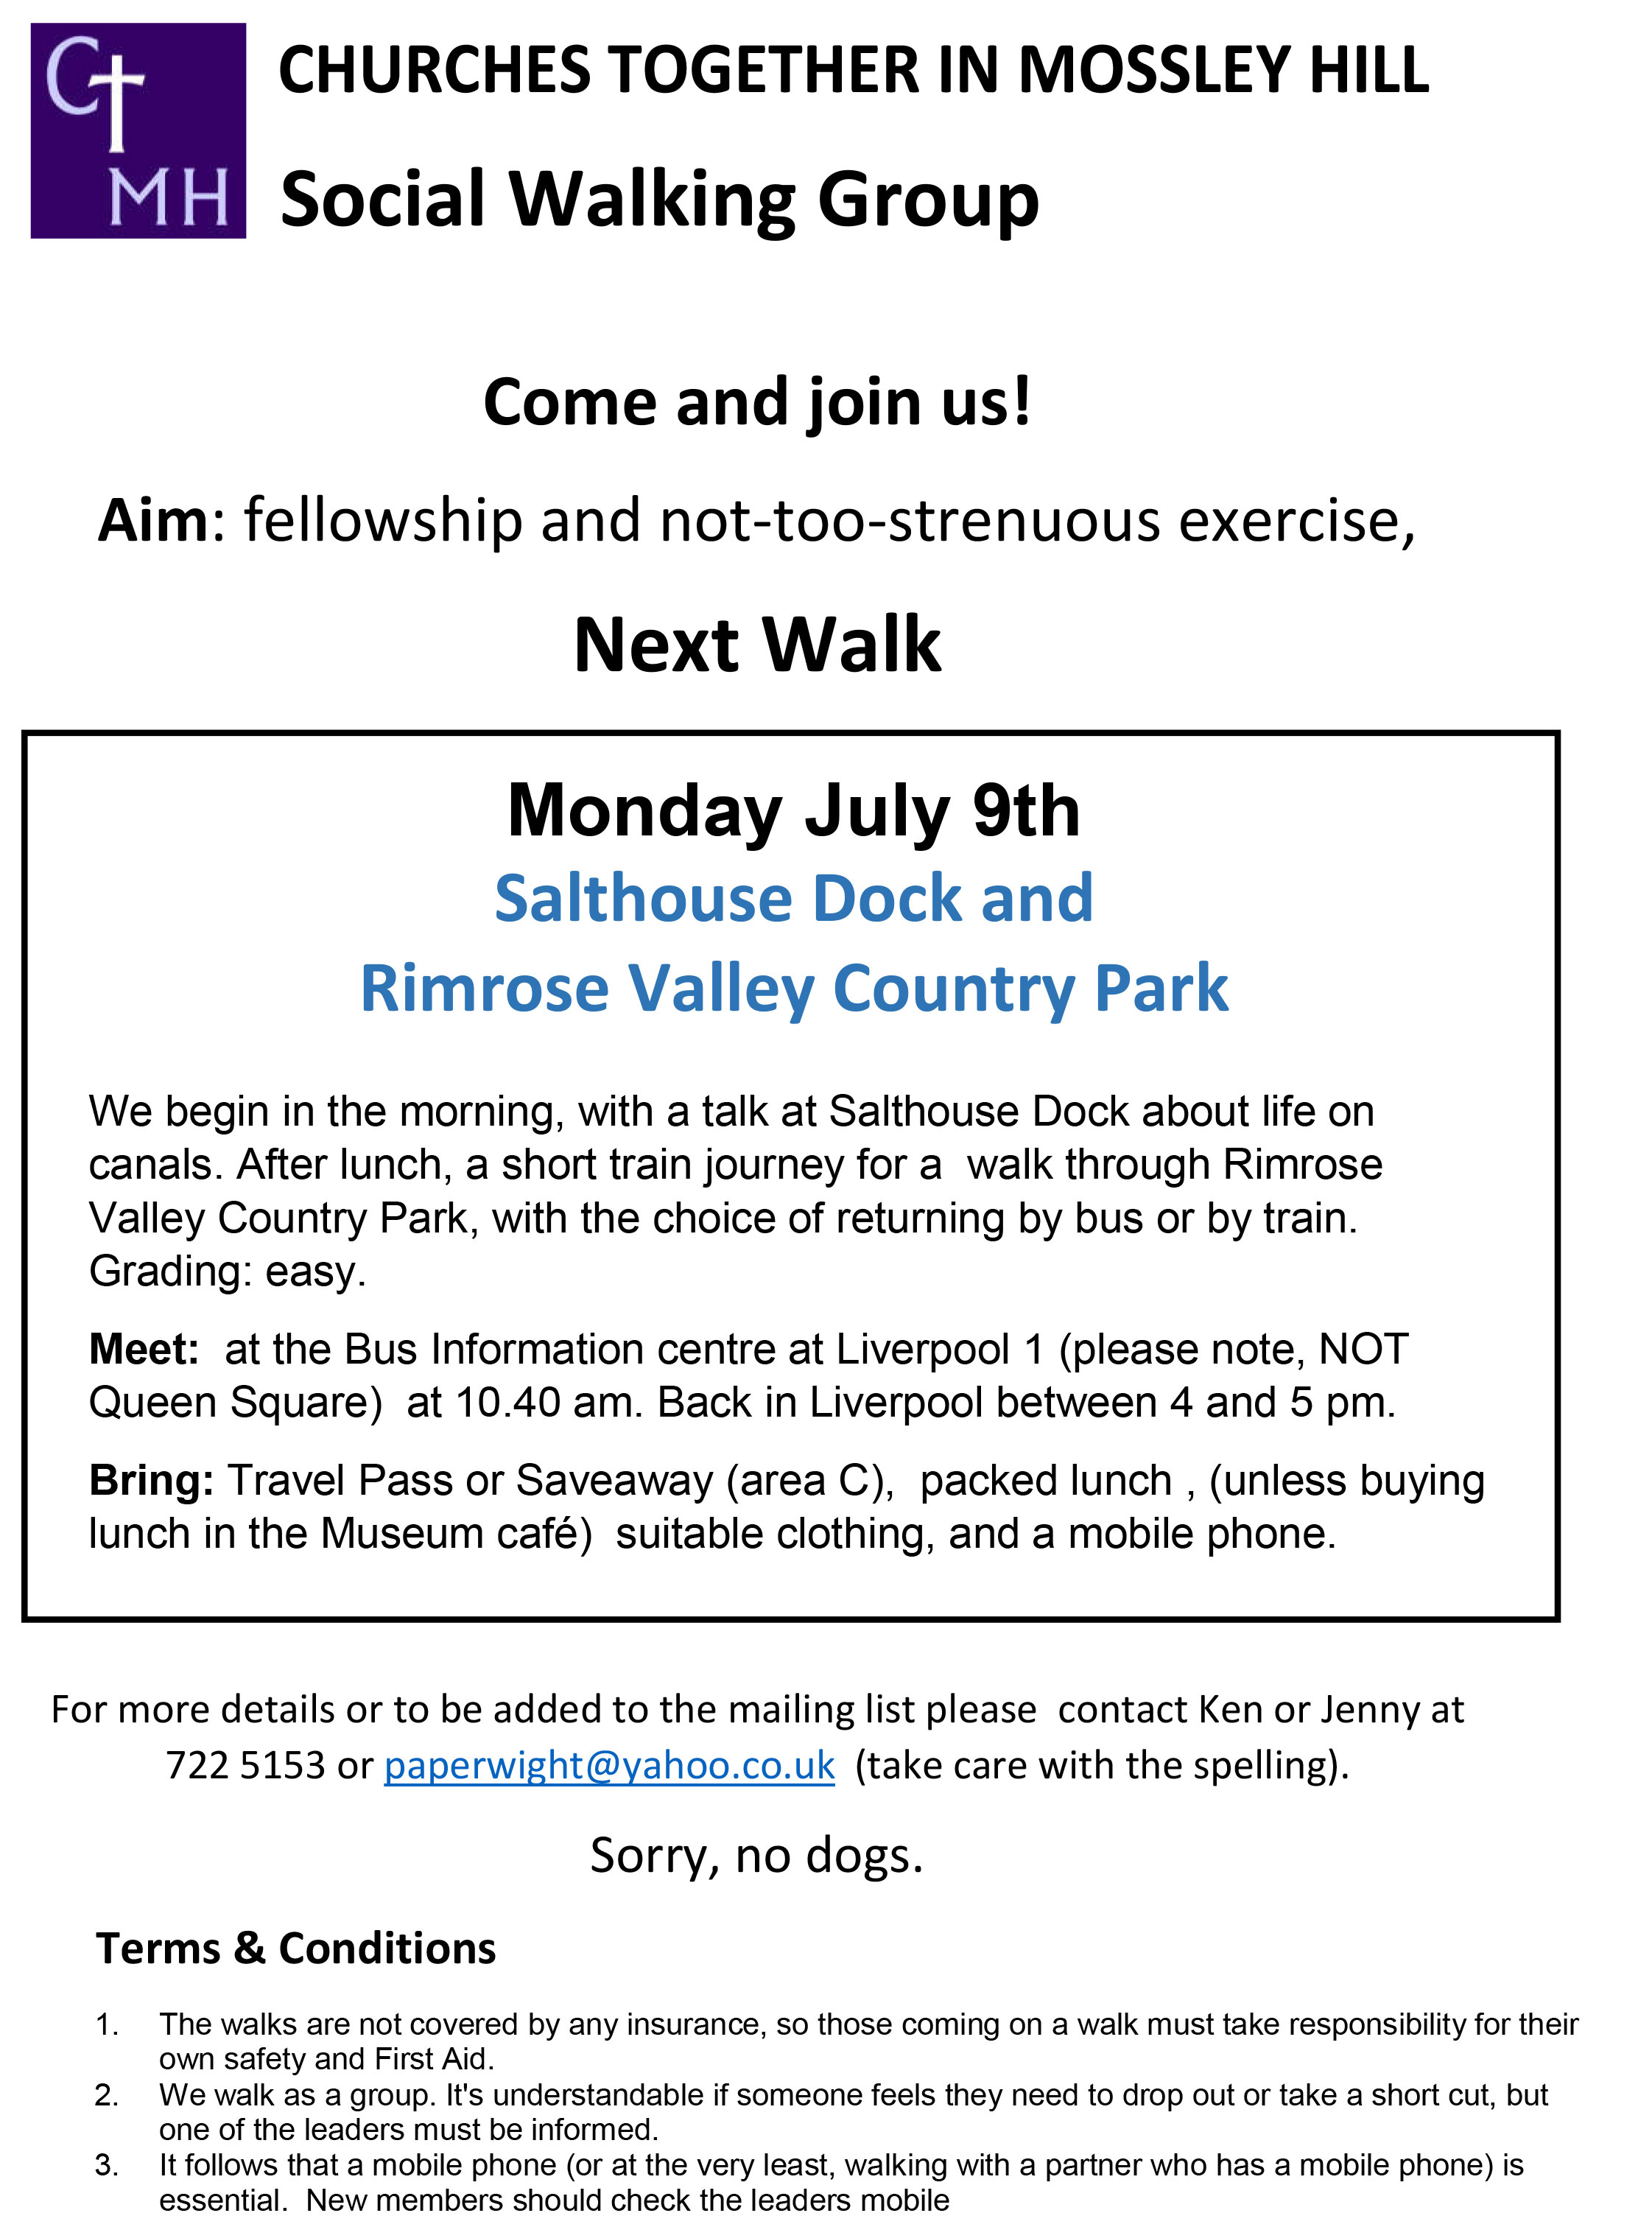 CTMH Social Walking Group July